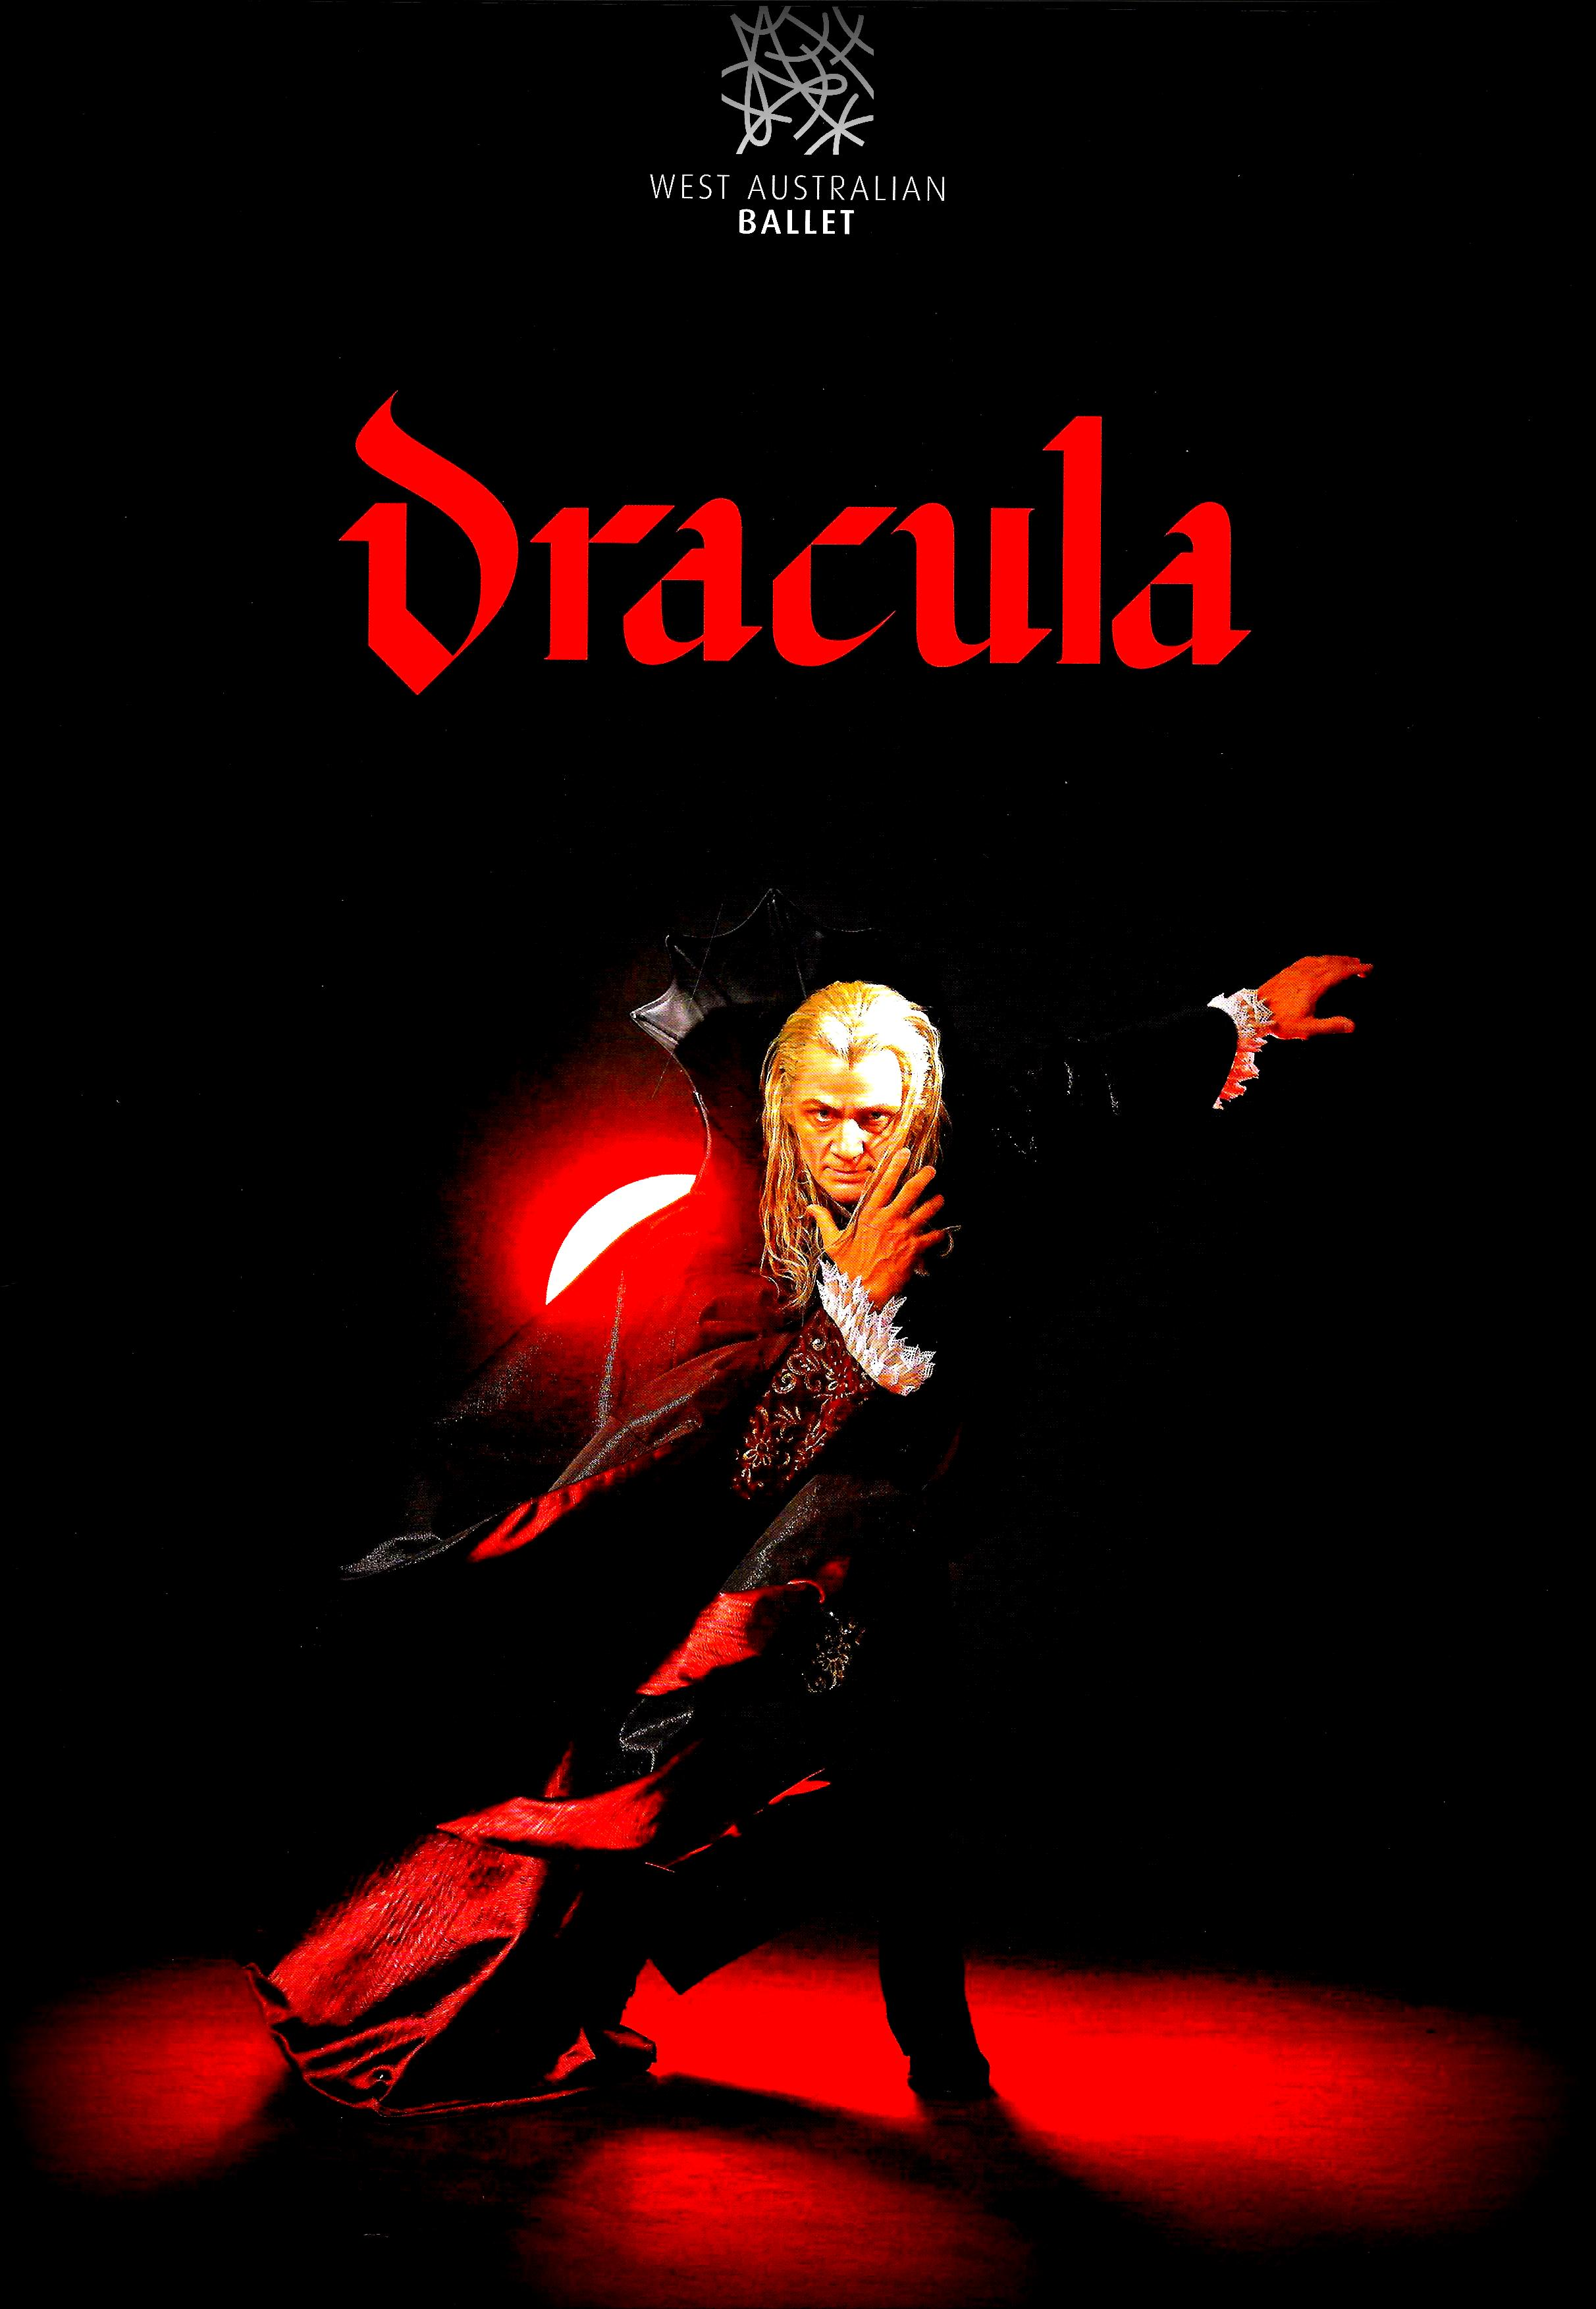 Dracula Programme Cover